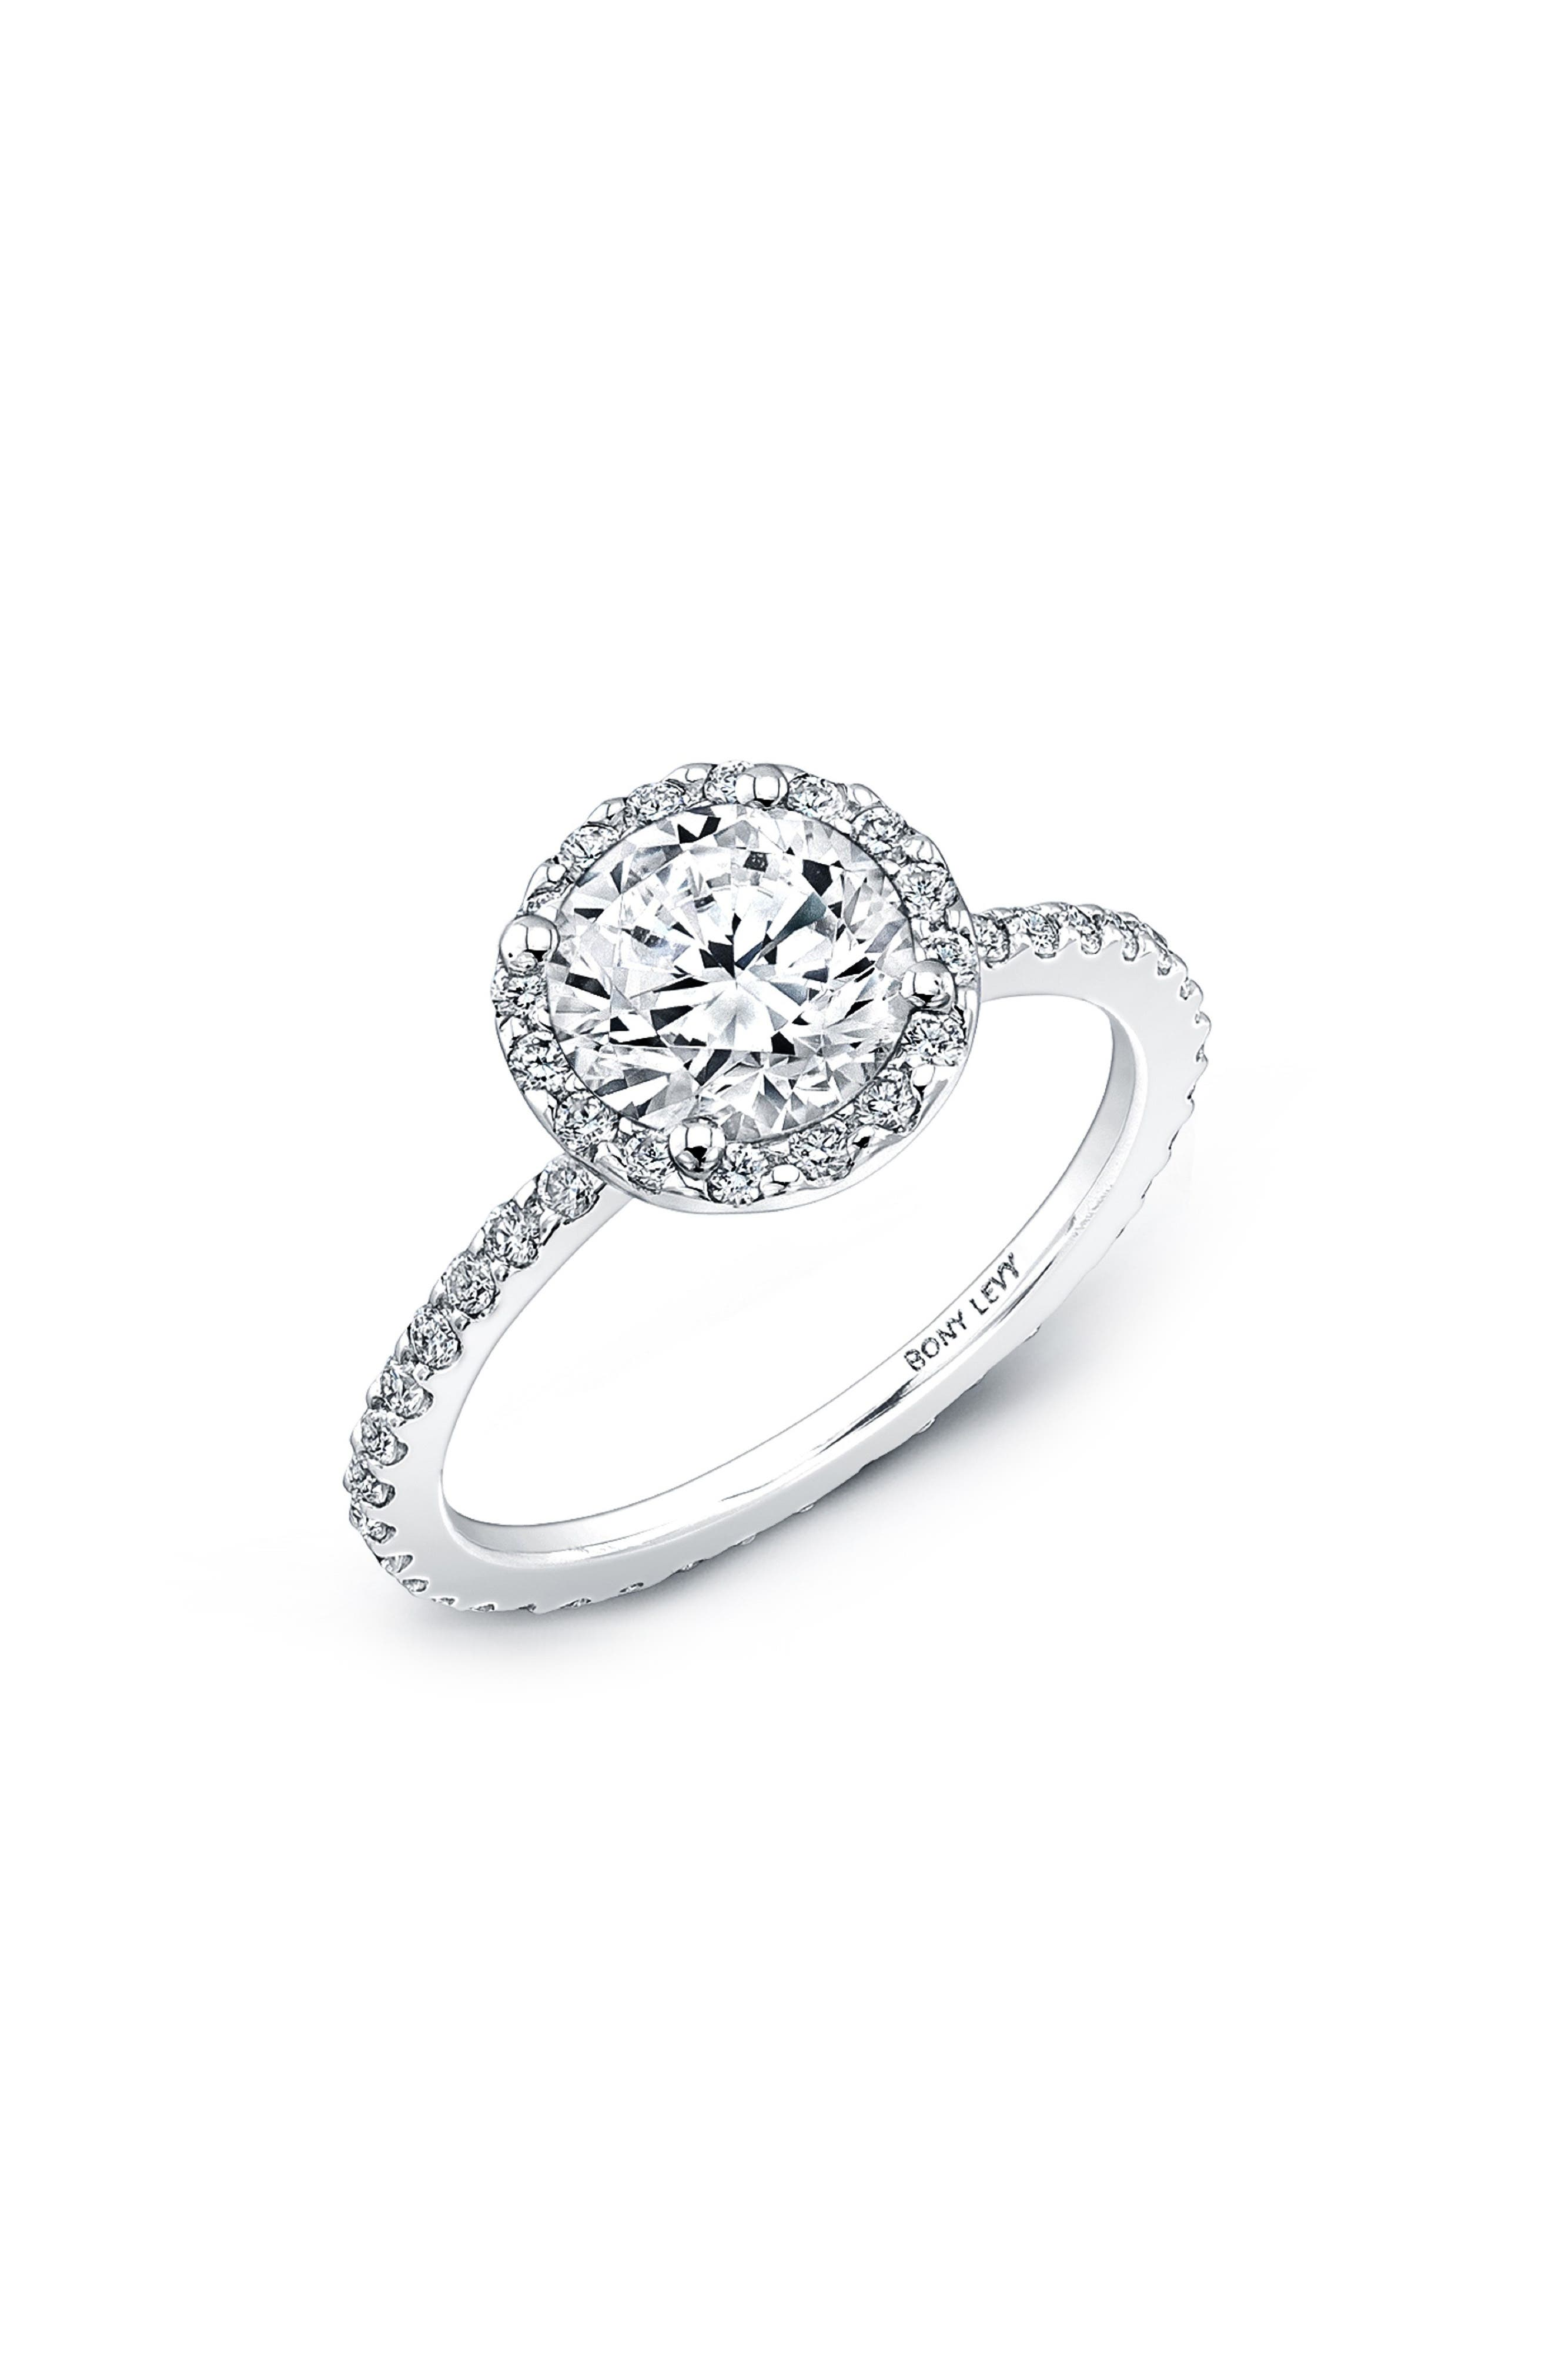 Pavé Halo Round Engagement Ring Setting,                             Main thumbnail 1, color,                             711